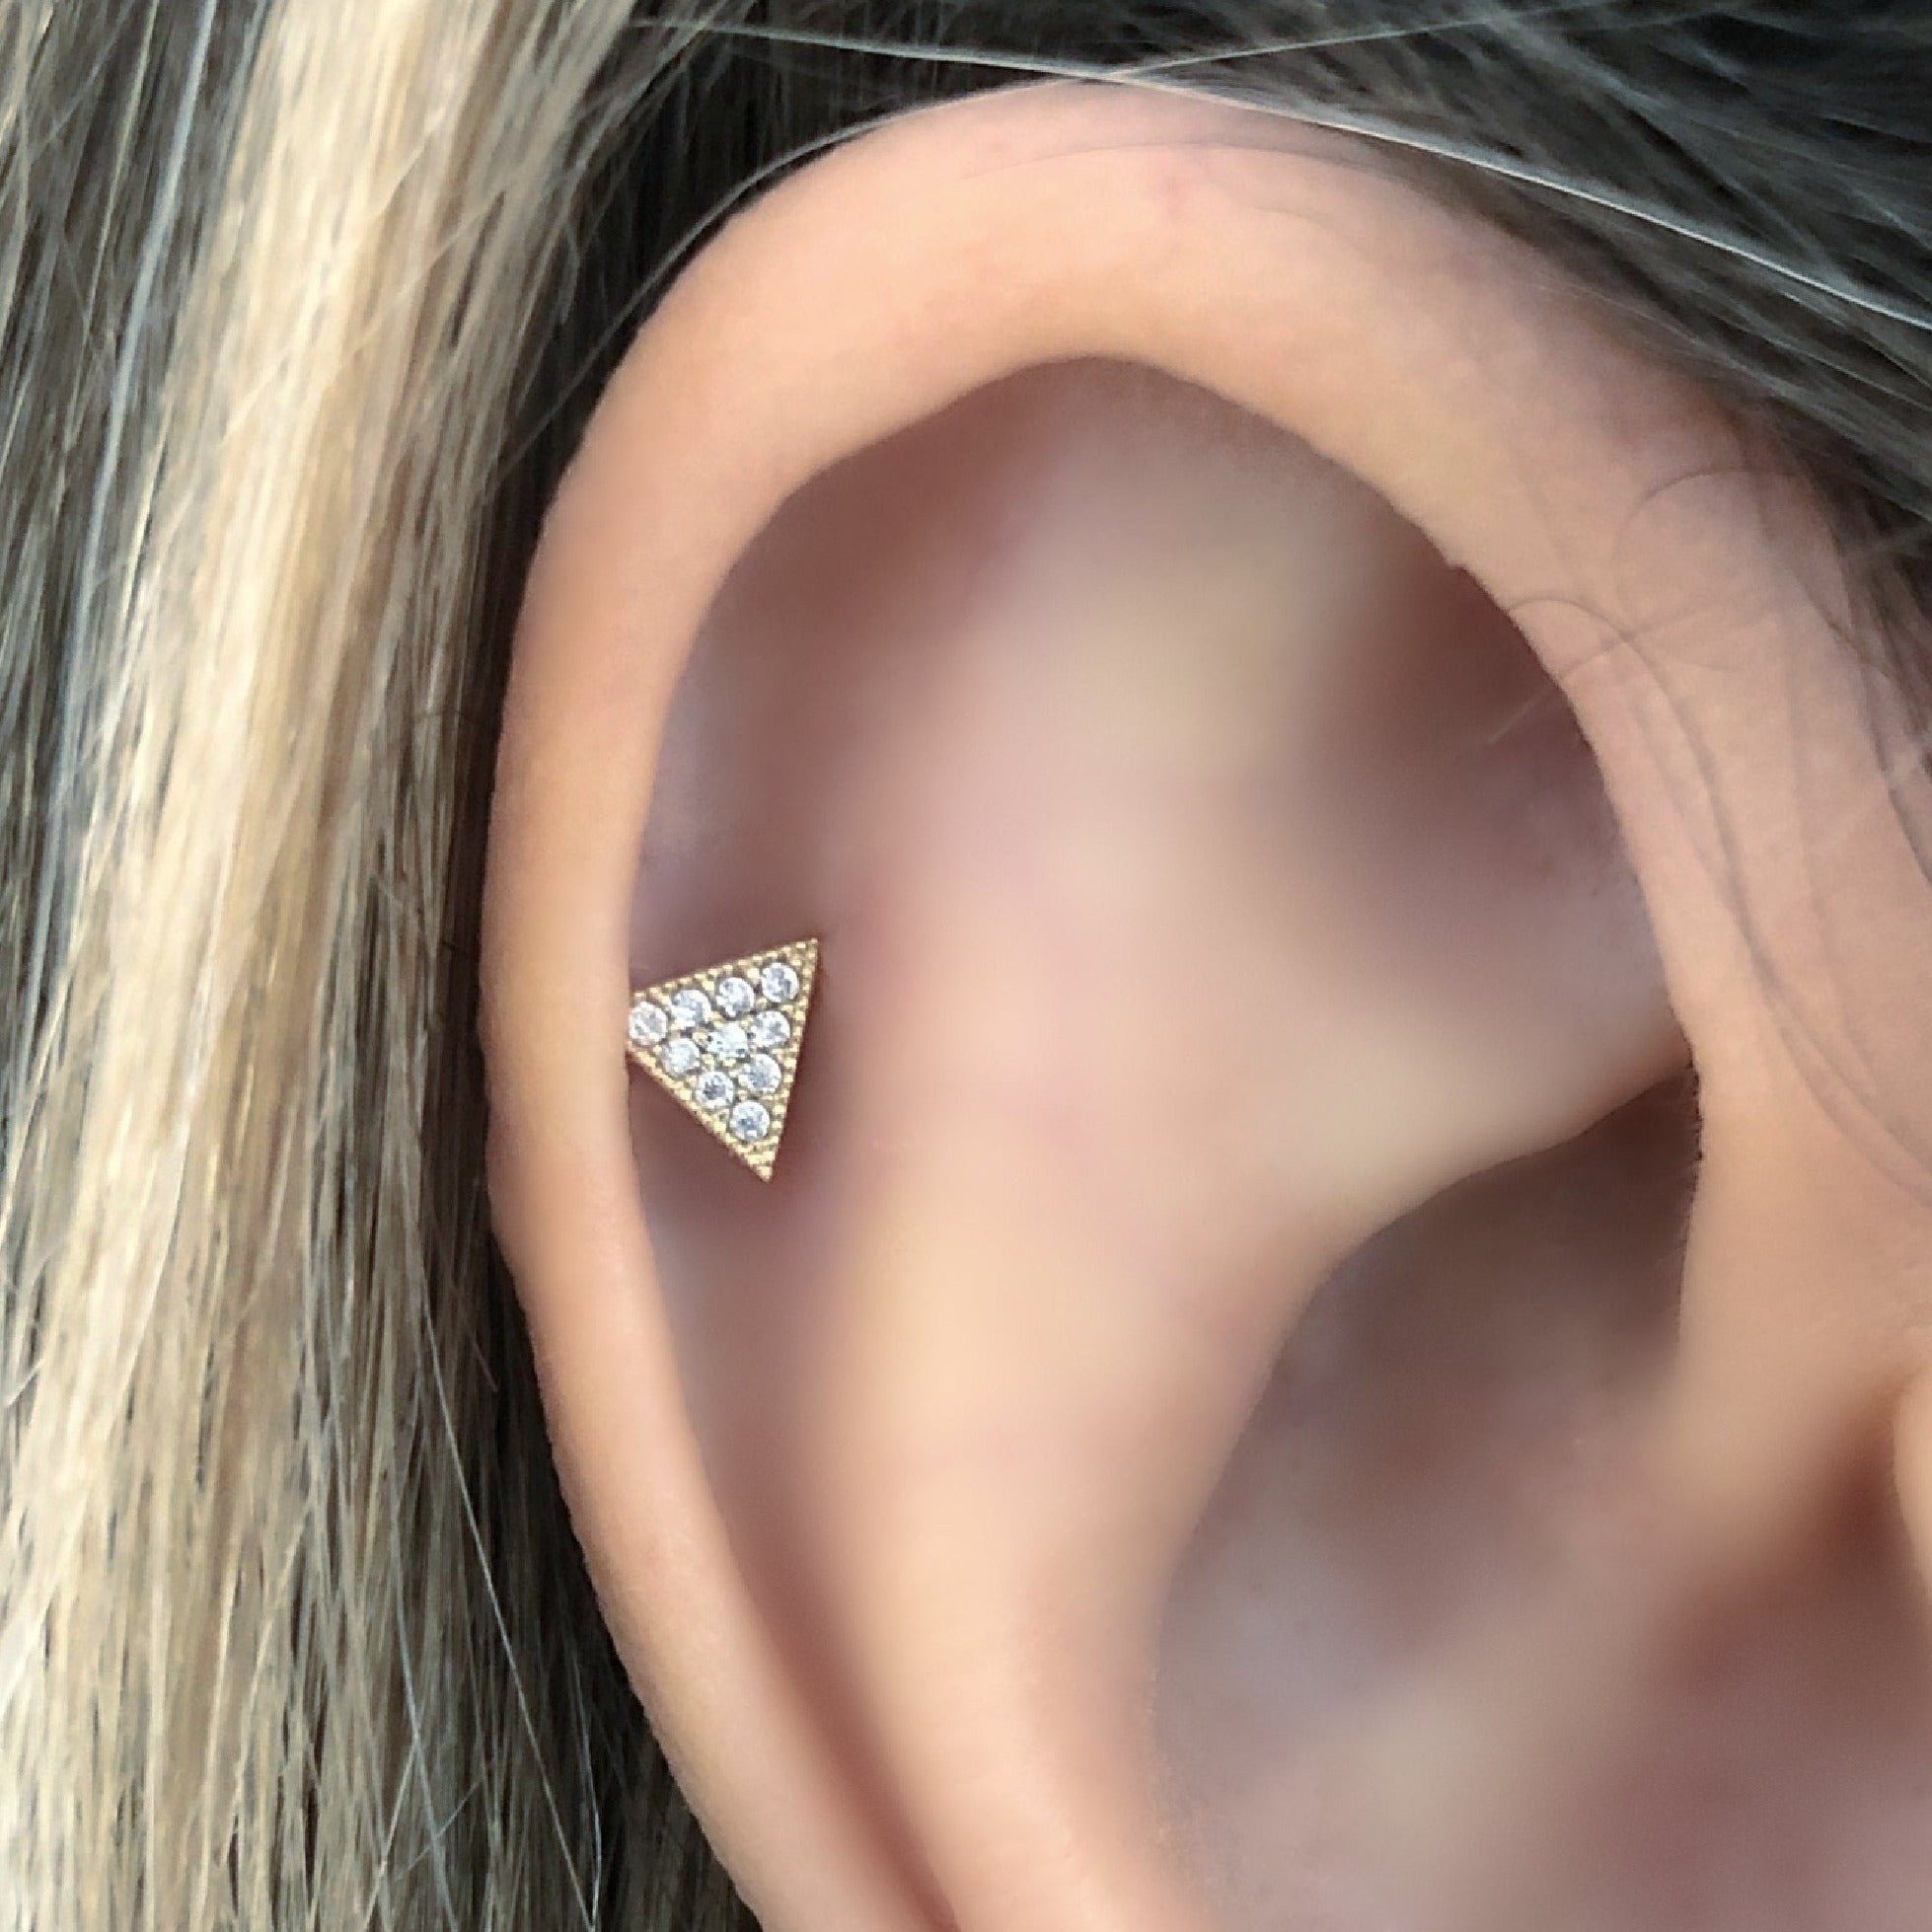 Triangle Stud Earring on Ear | Piercing Earrings | Solid Gold Hypoallergenic Jewelry | Helix, Tragus, Cartilage | Two of Most Fine Jewelry